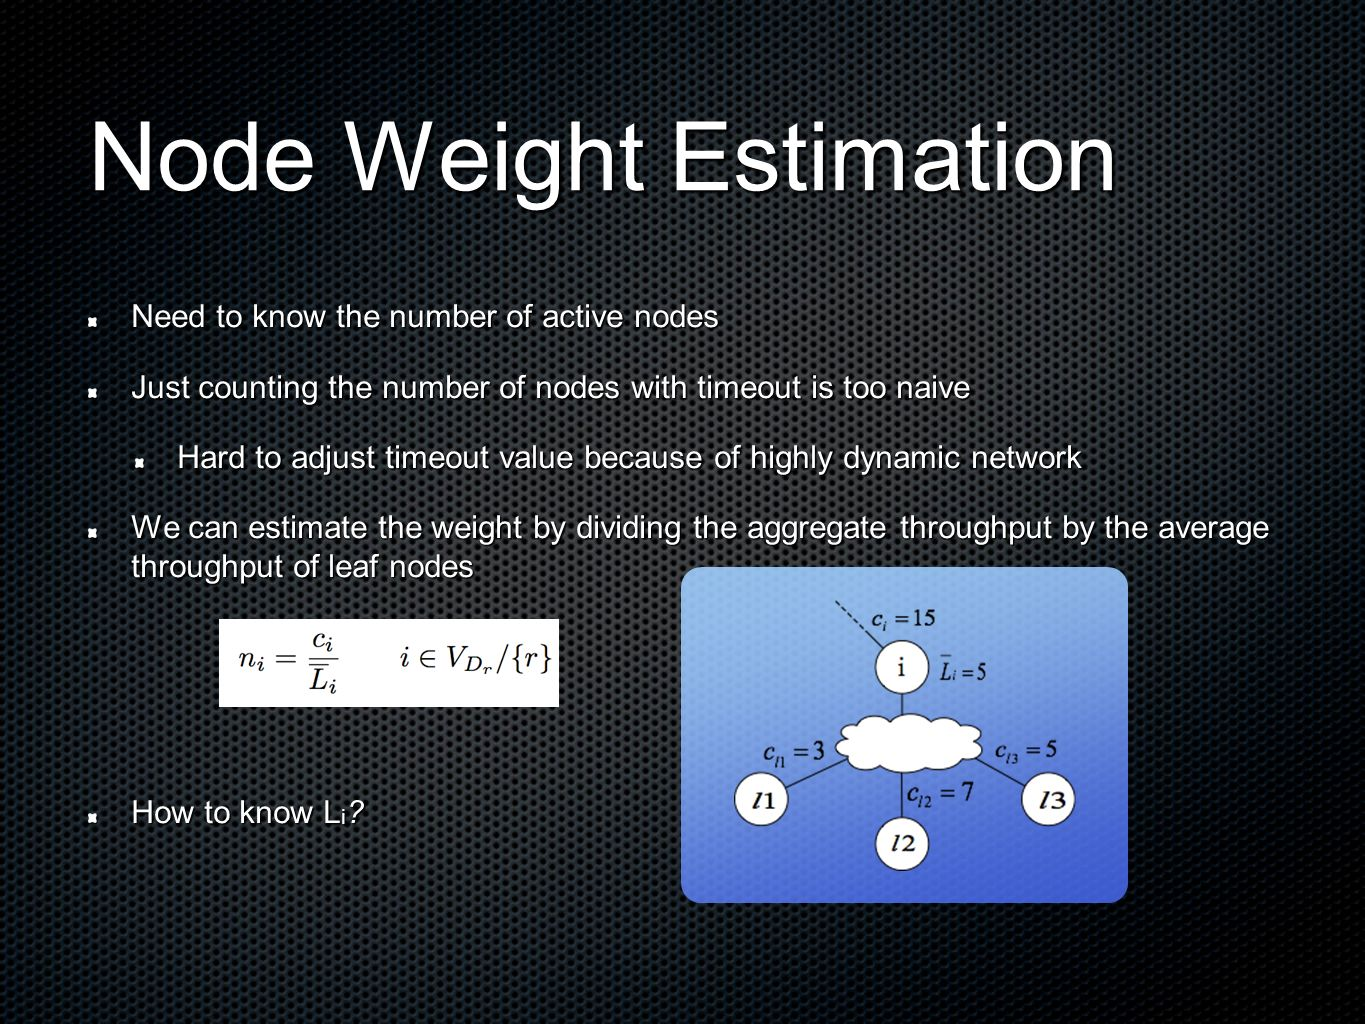 Node Weight Estimation Need to know the number of active nodes Just counting the number of nodes with timeout is too naive Hard to adjust timeout value because of highly dynamic network We can estimate the weight by dividing the aggregate throughput by the average throughput of leaf nodes How to know L i